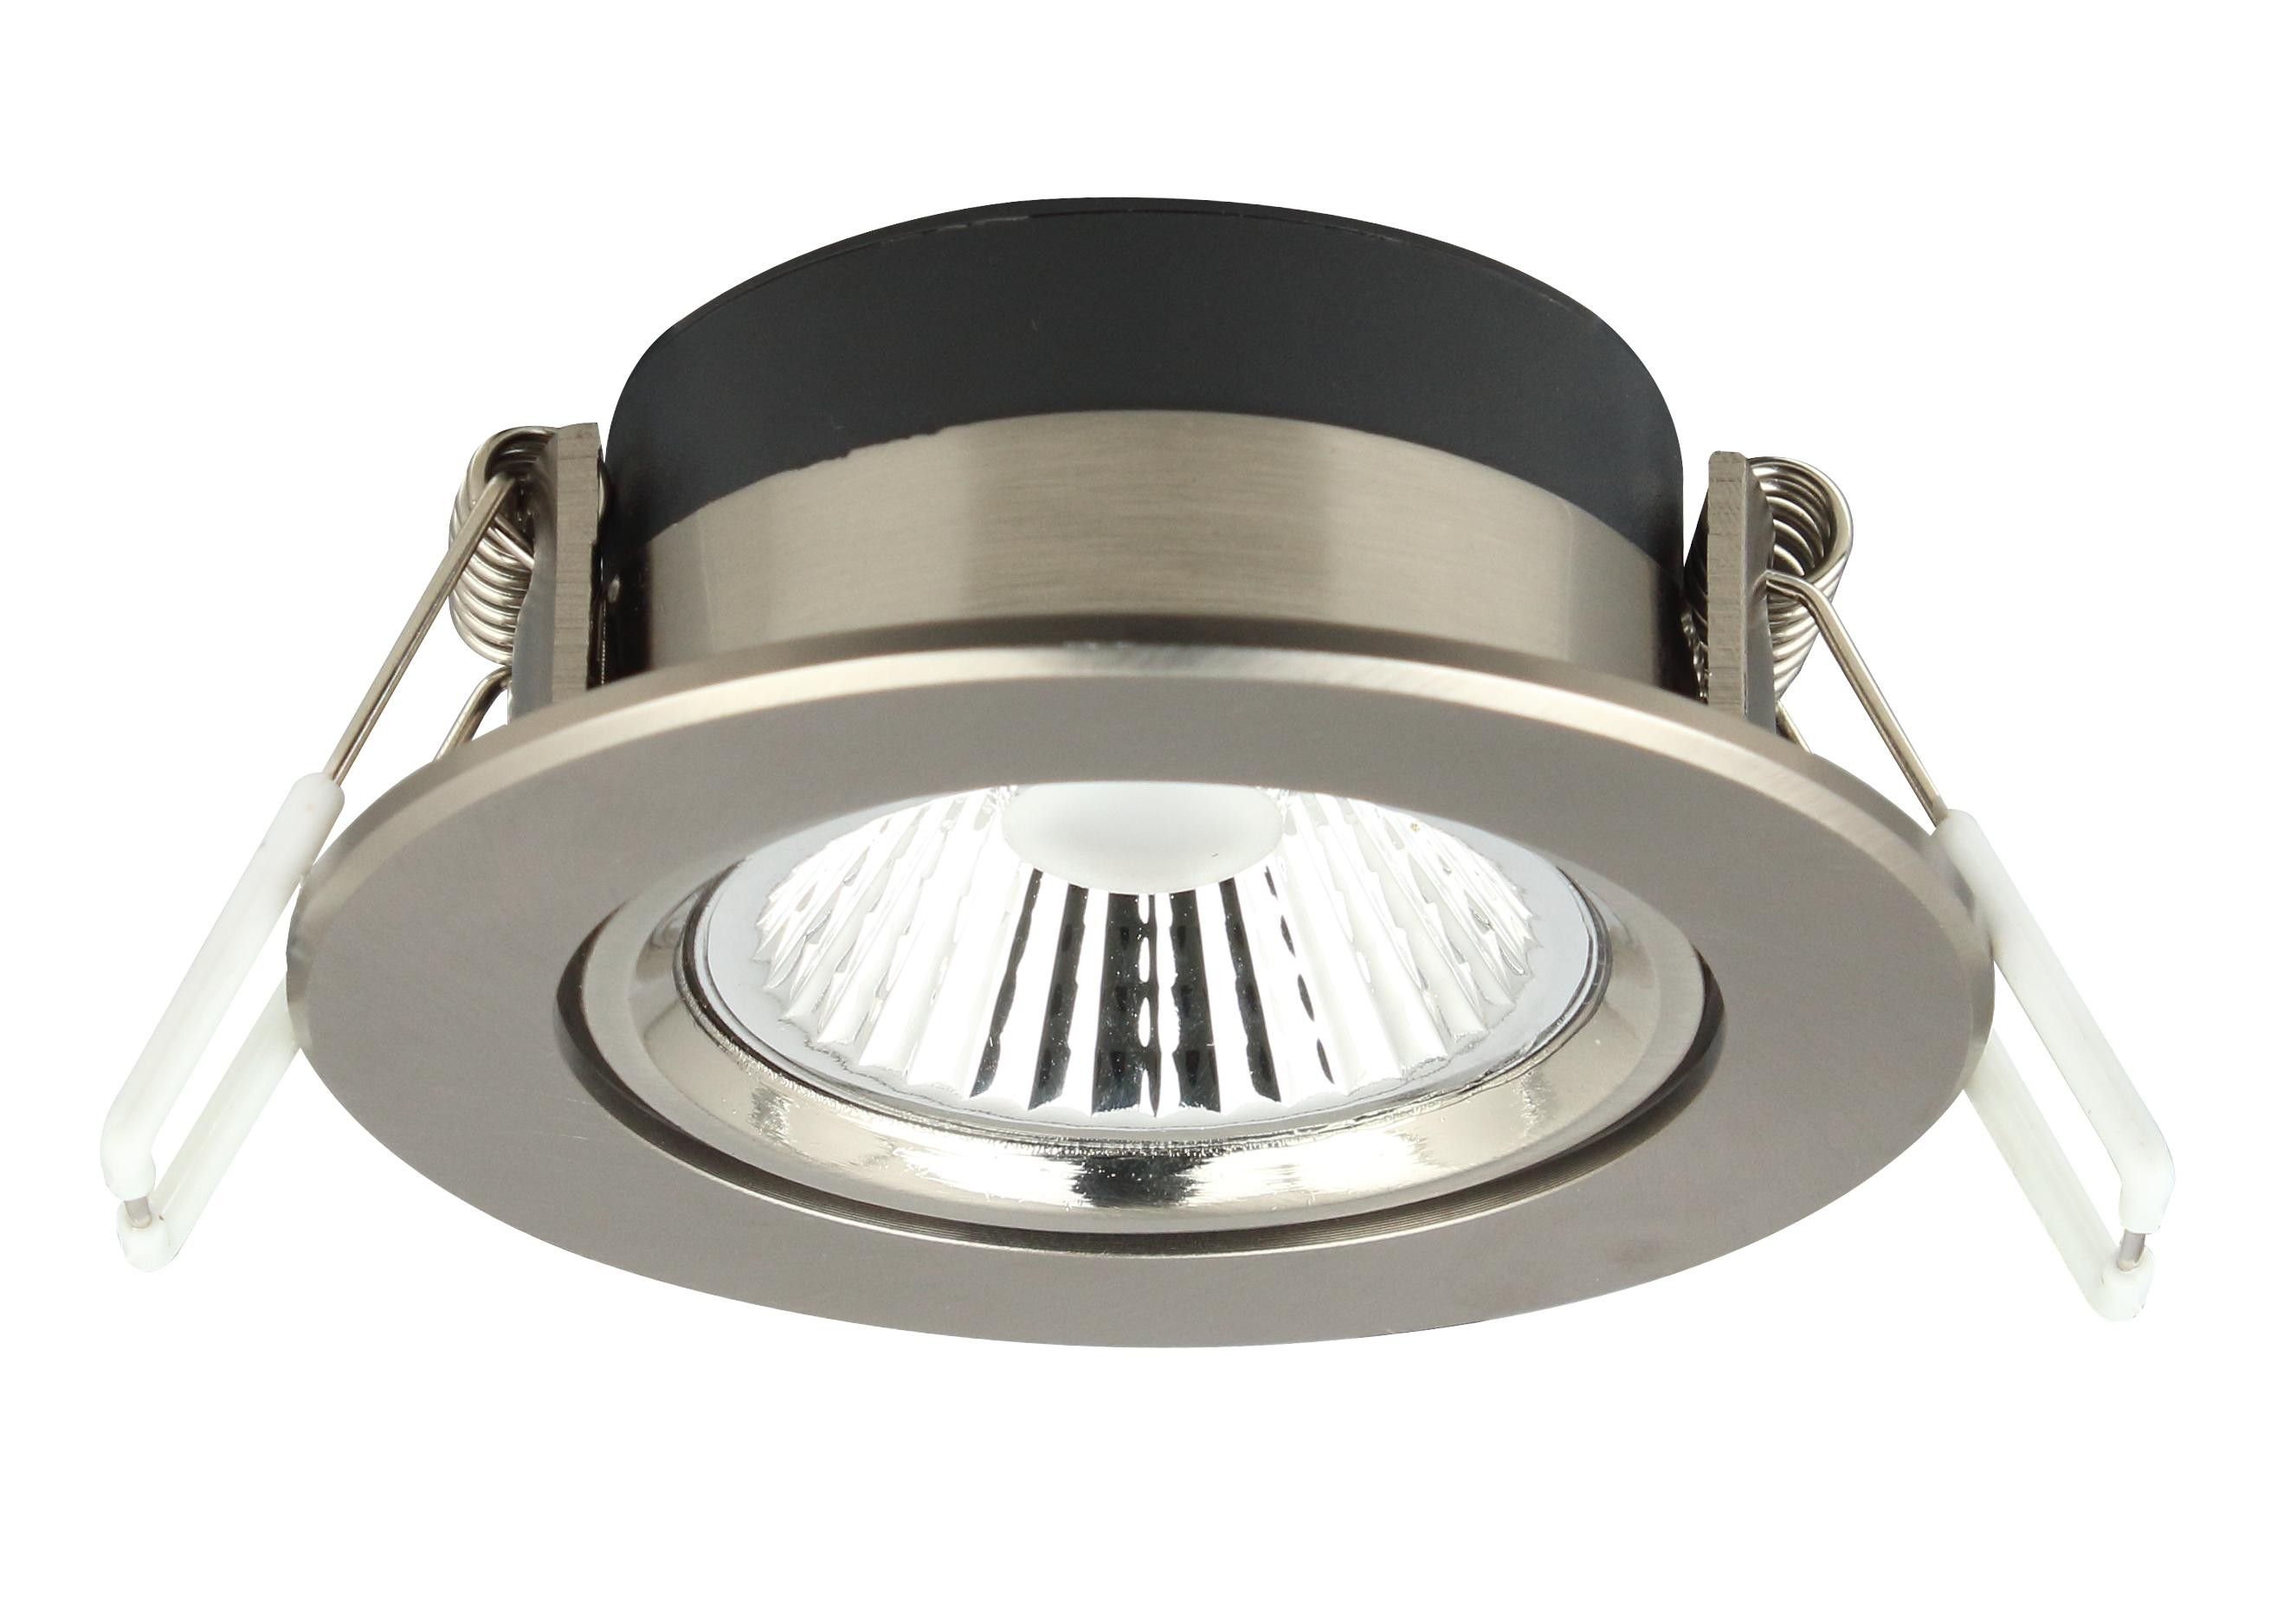 LED Downlight Nickel Einbauleuchte 6W 400lm 2700K superflach dimmbar ...